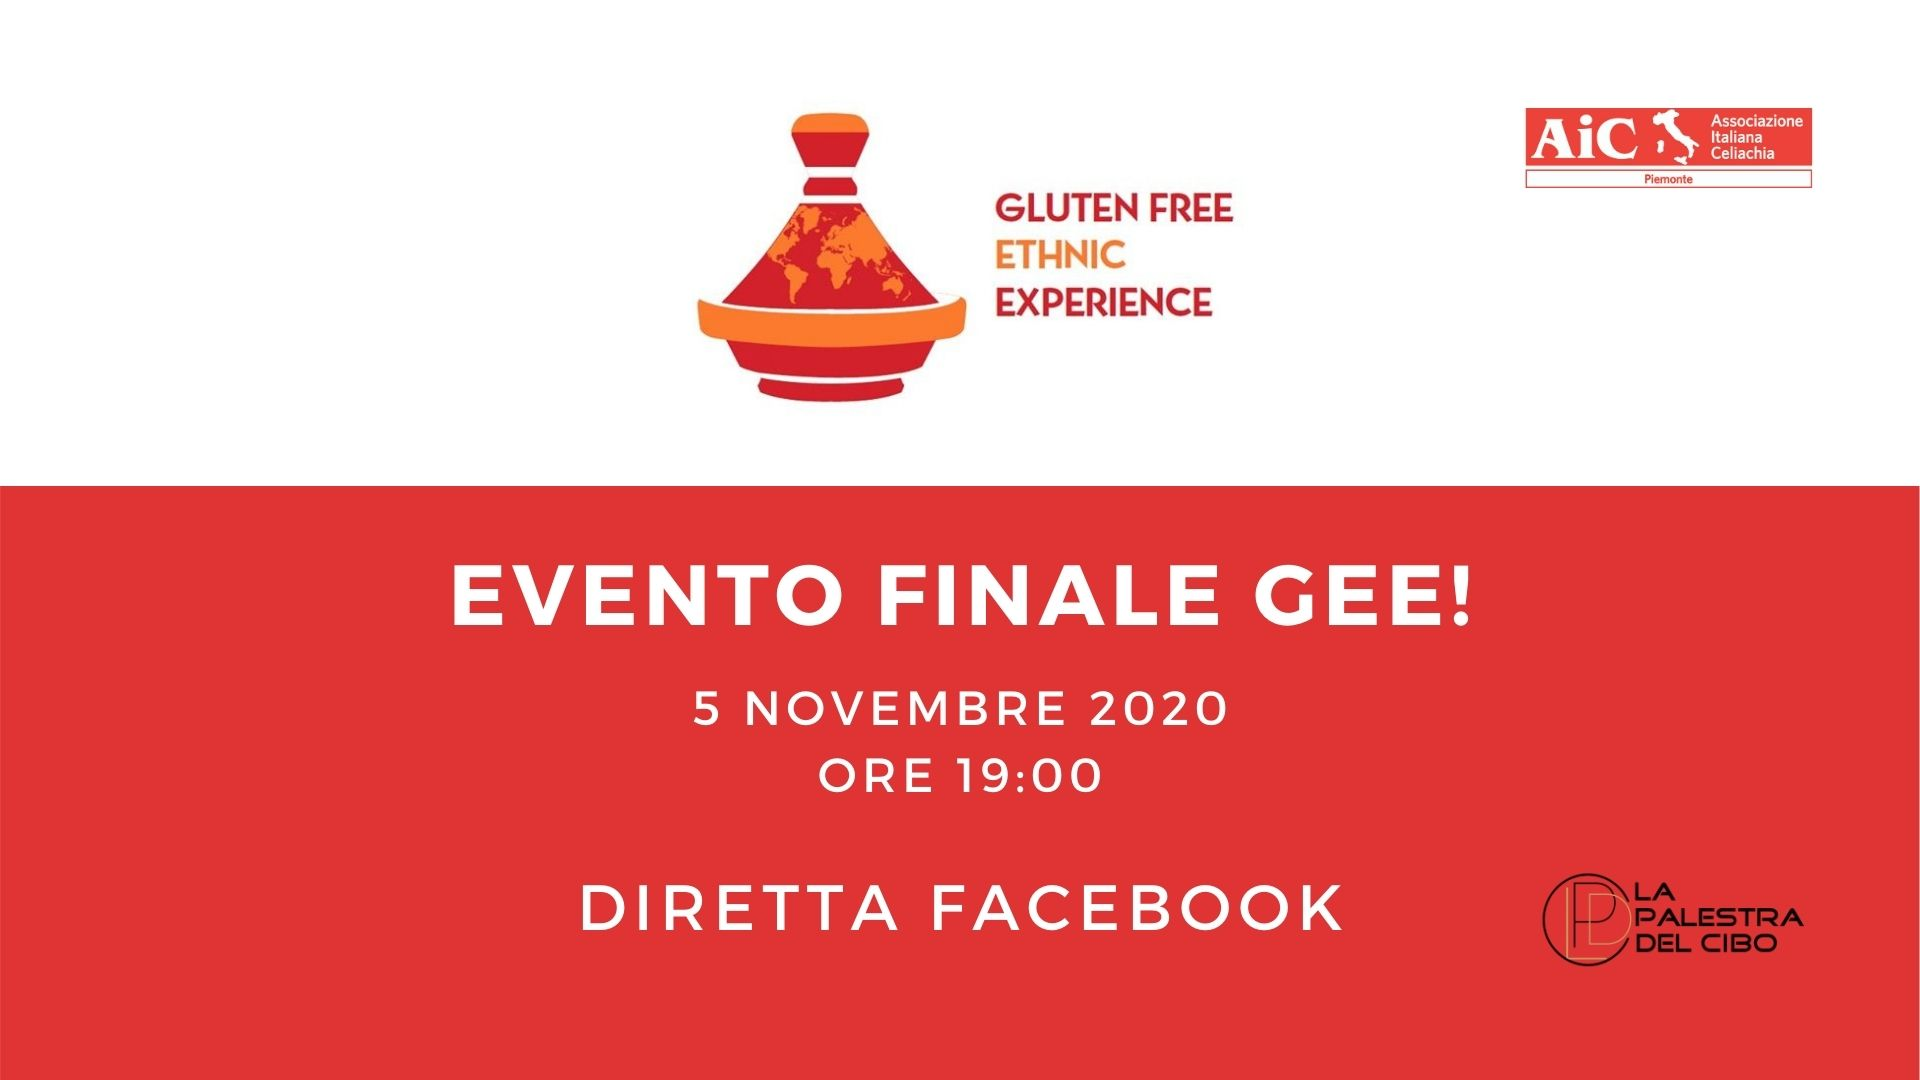 EVENTO FINALE GEE!